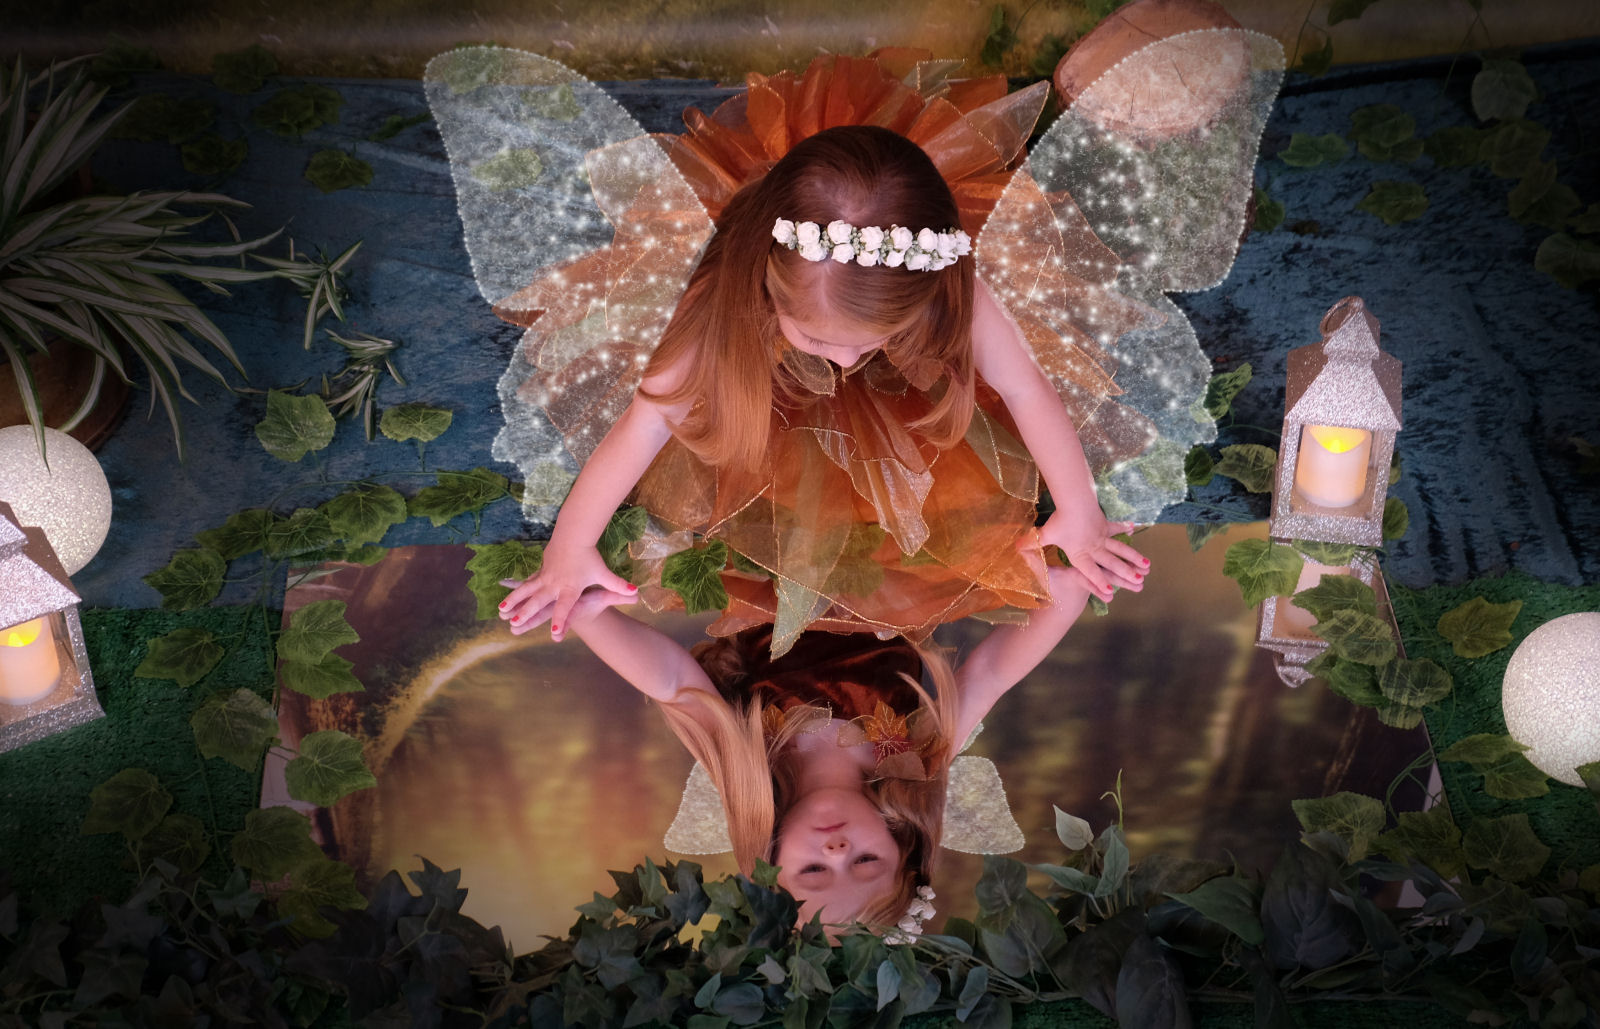 Image from fairy experience